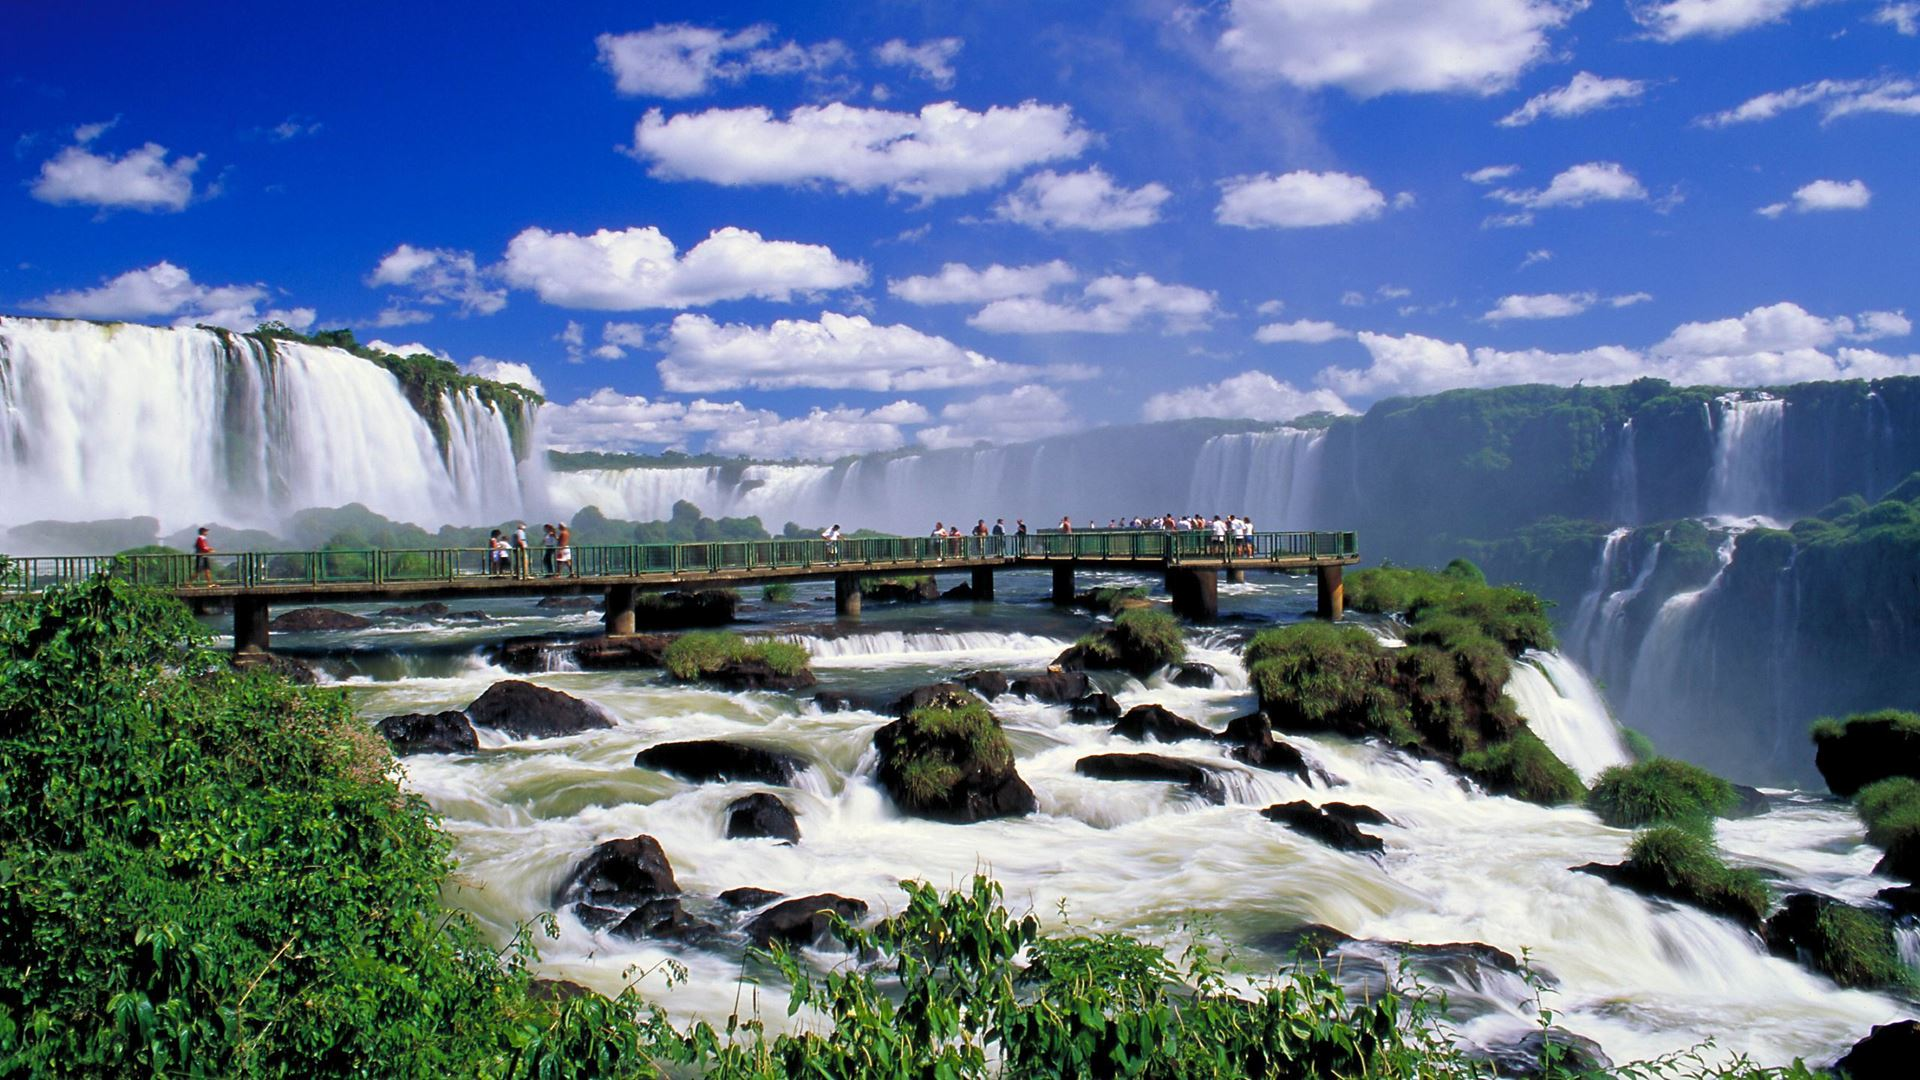 Promo: Iguazu Falls Argentina And Brazil. Airport Shuttle Service For Free!